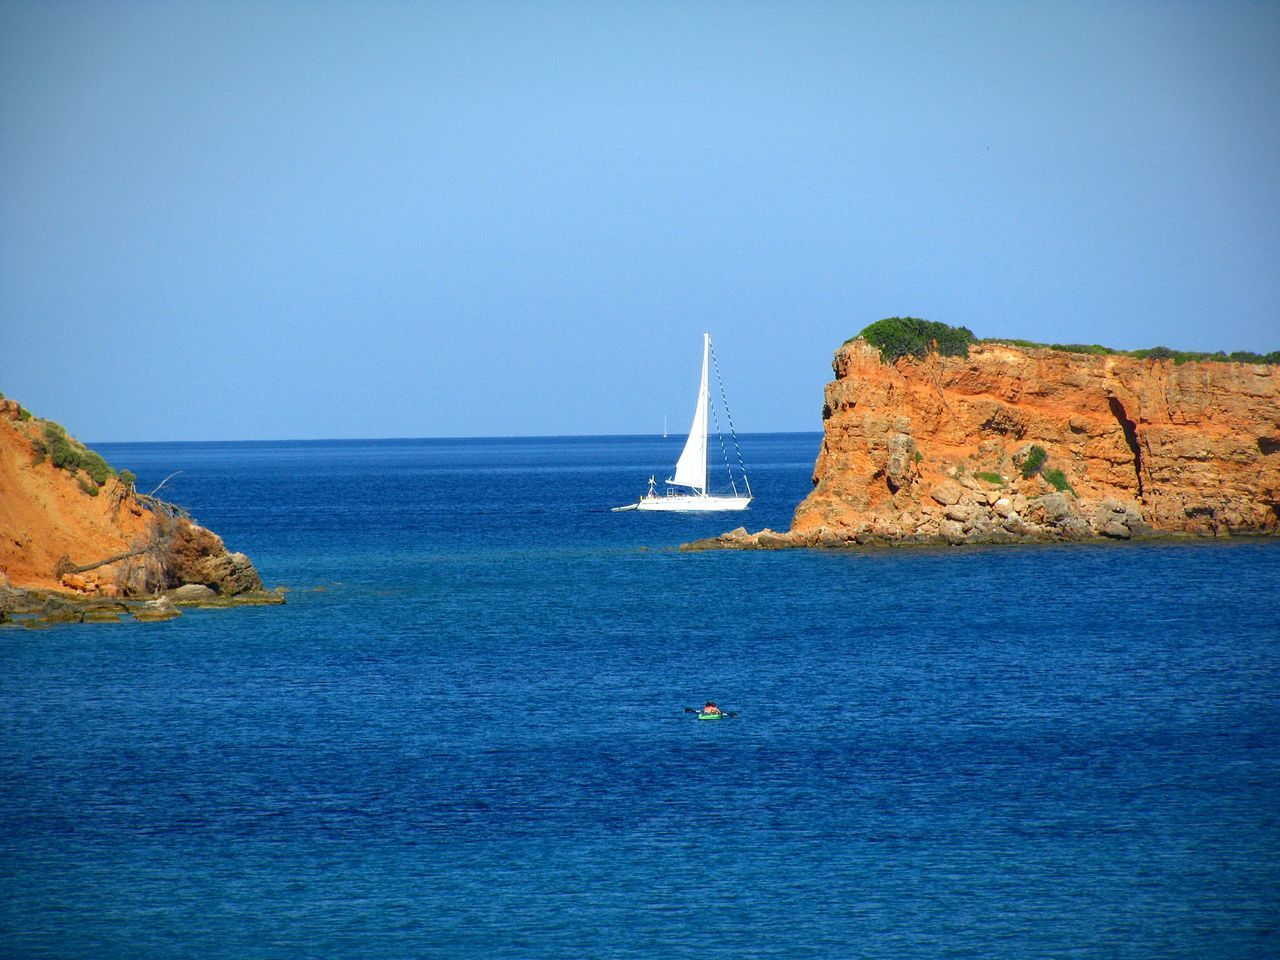 Sailboat Islets Boat Sea Seascape Islets And Sea Alonnisos Island Greek Islands Islet On The Way Fine Art Photography The Essence Of Summer Blue Sea 43 Golden Moments Shades Of Blue Crystal Clear Waters Blue Horizons Live For The Story